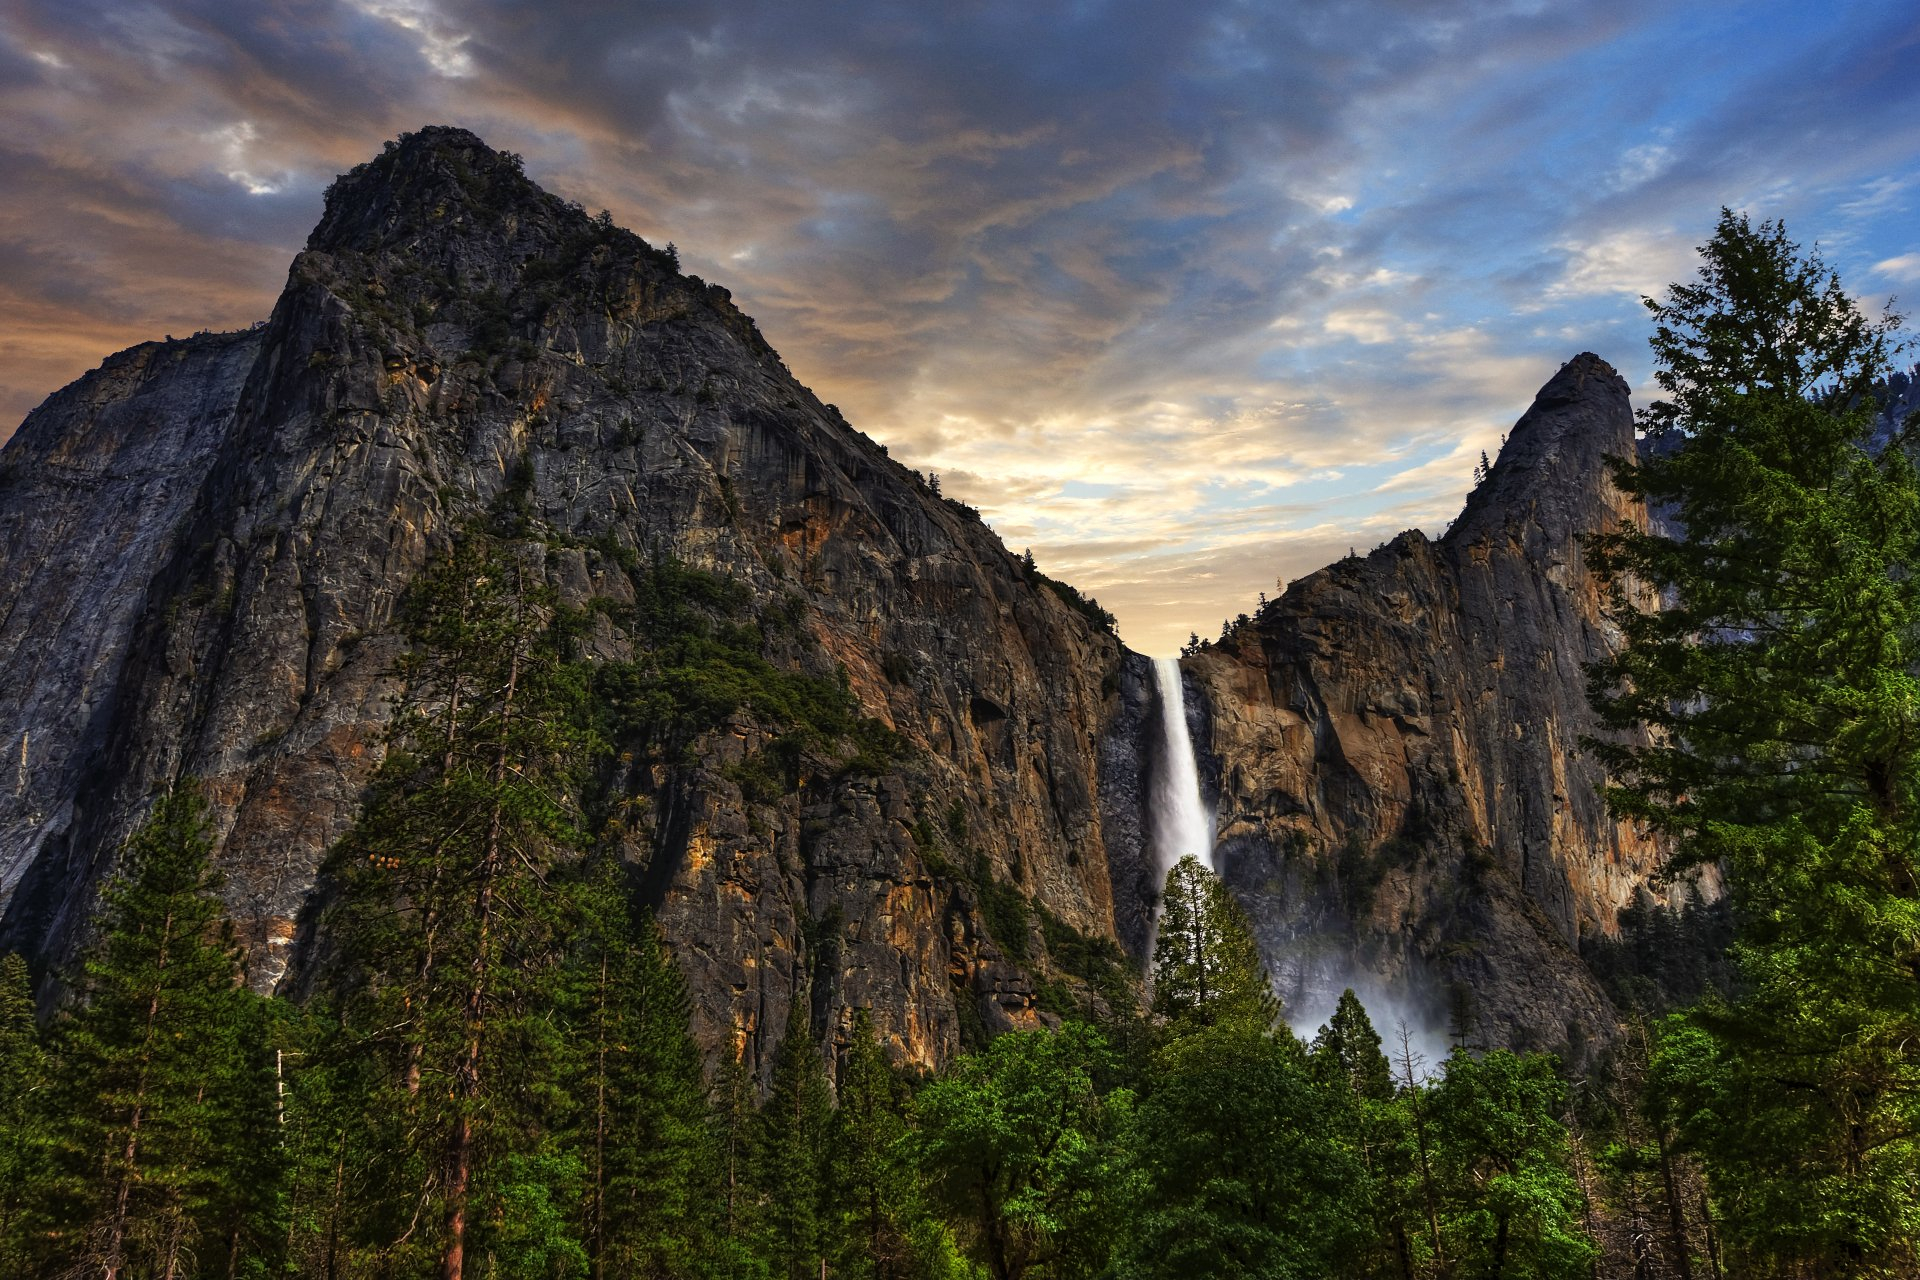 Bridalveil fall 8k ultra hd wallpaper background image - Yosemite national park hd wallpaper ...